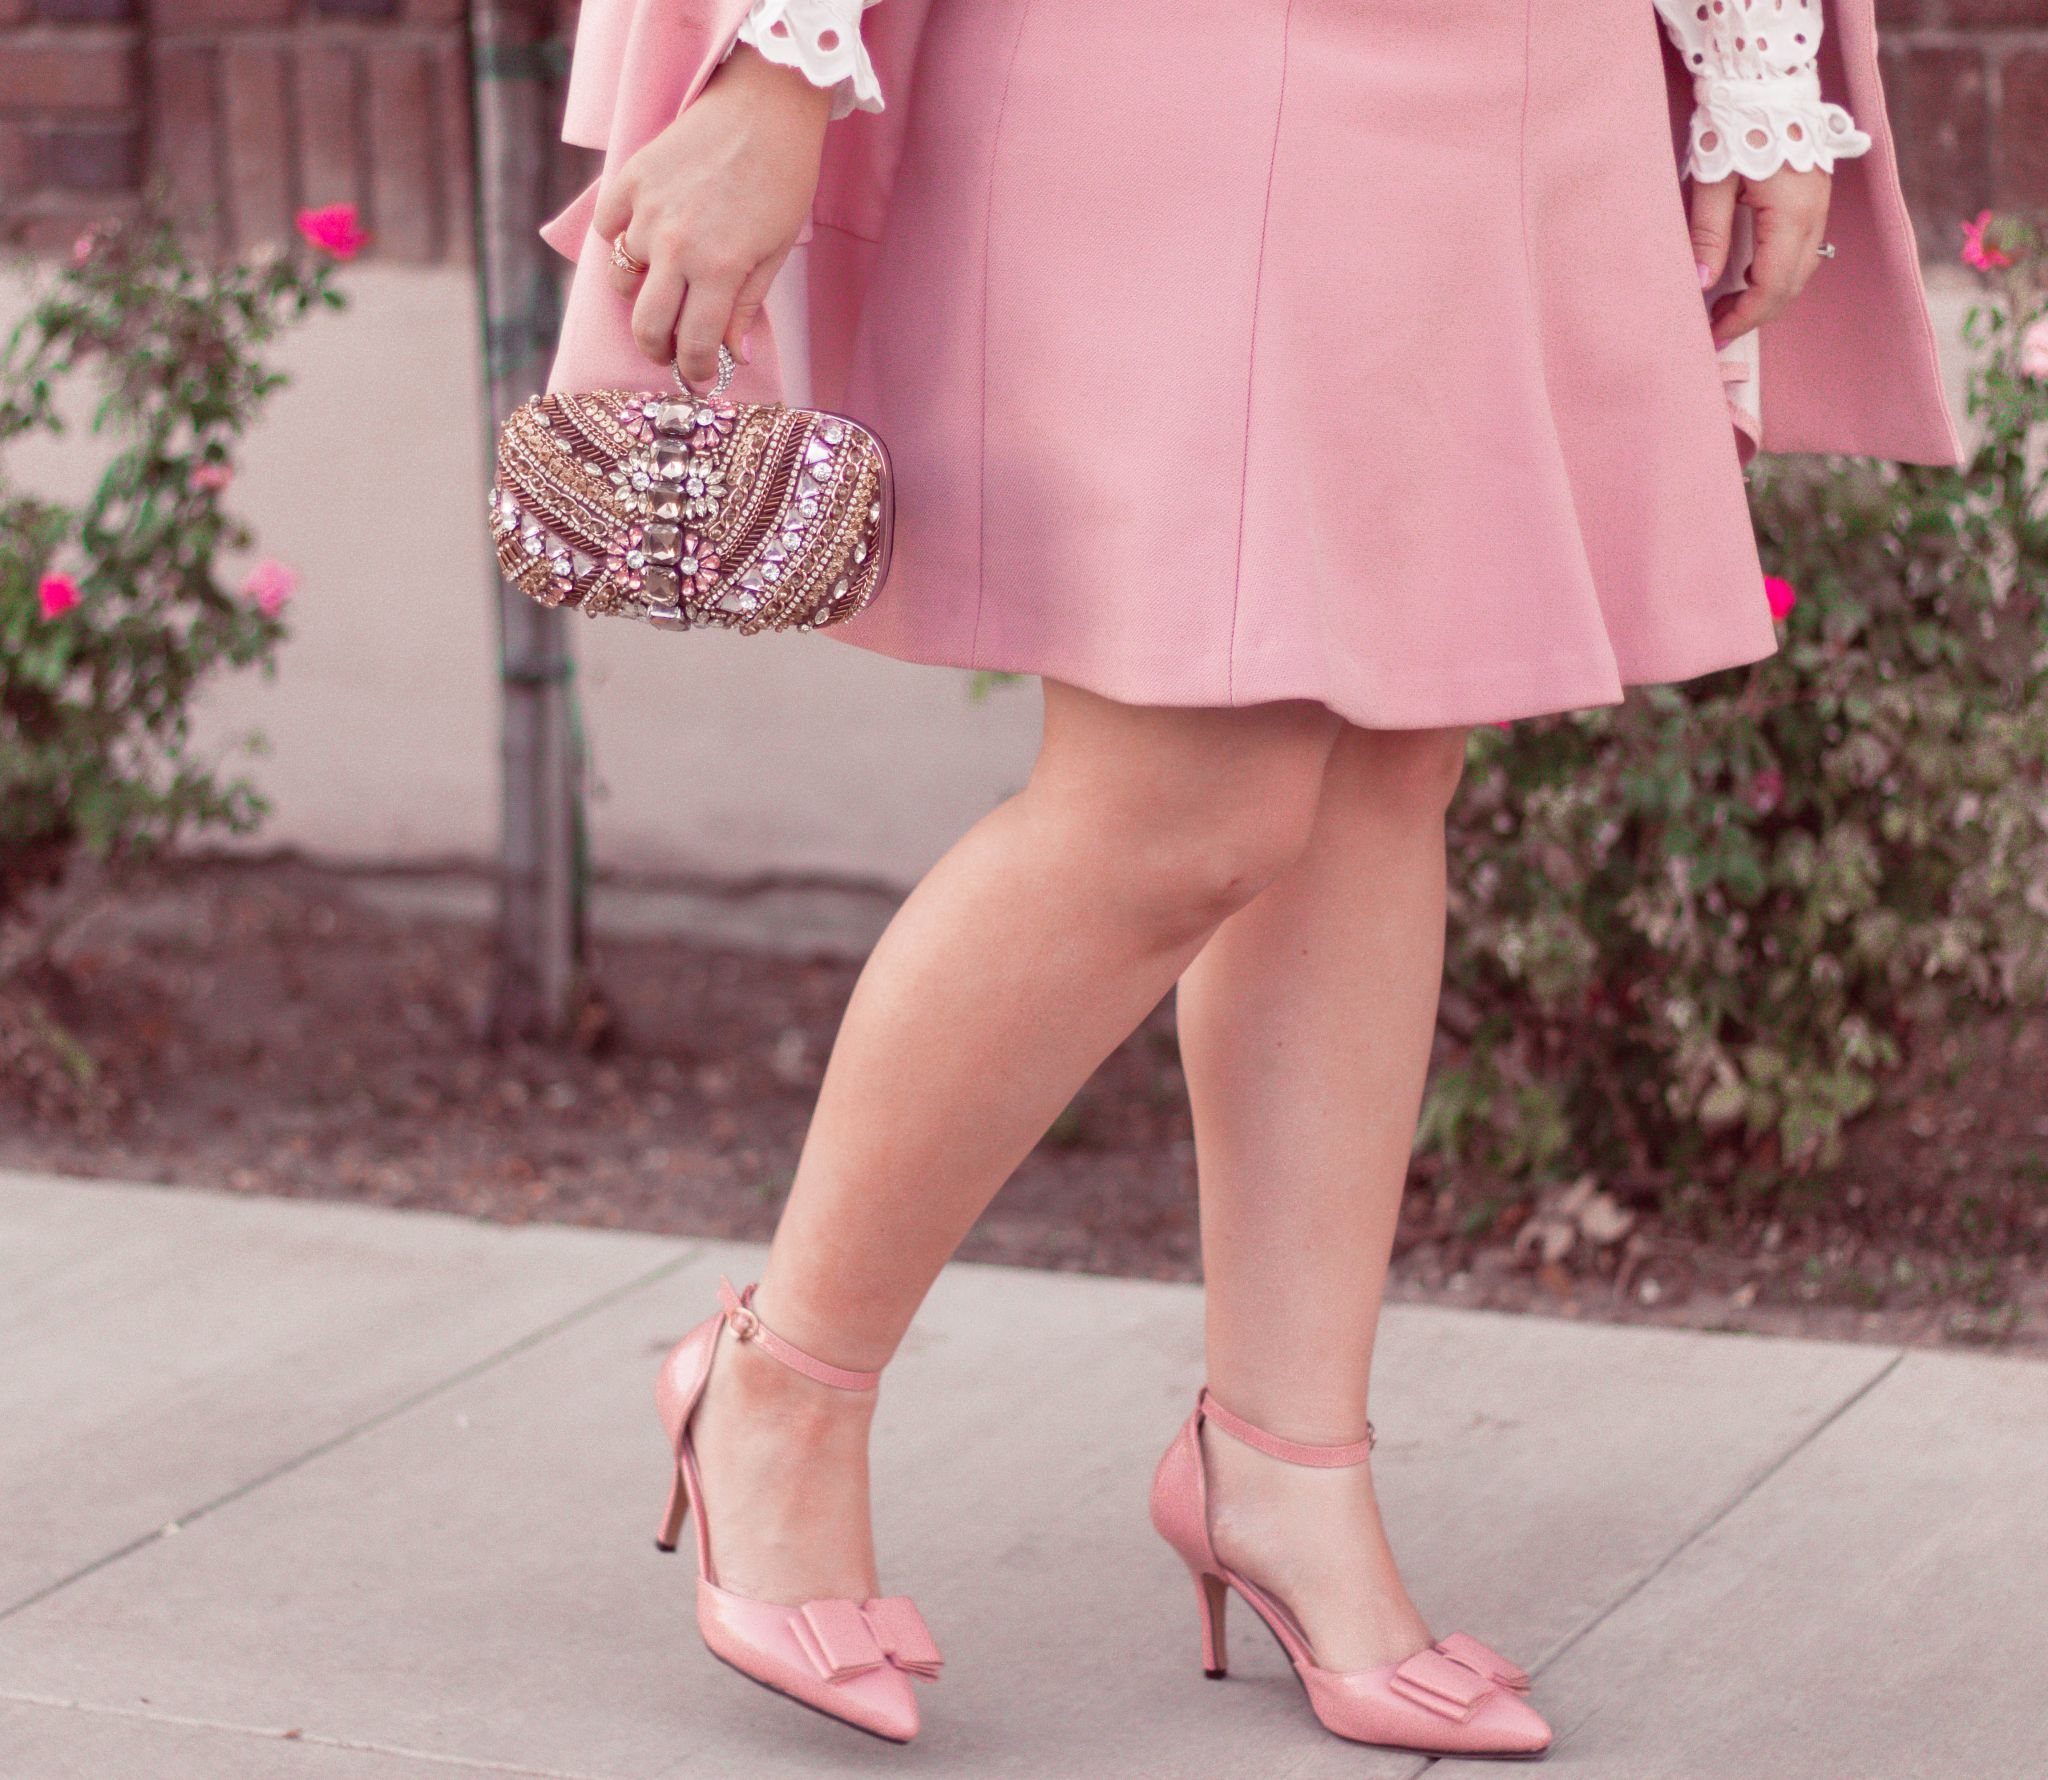 Elizabeth Hugen of Lizzie in Lace shares her girly shoe collection including these pink bow heels